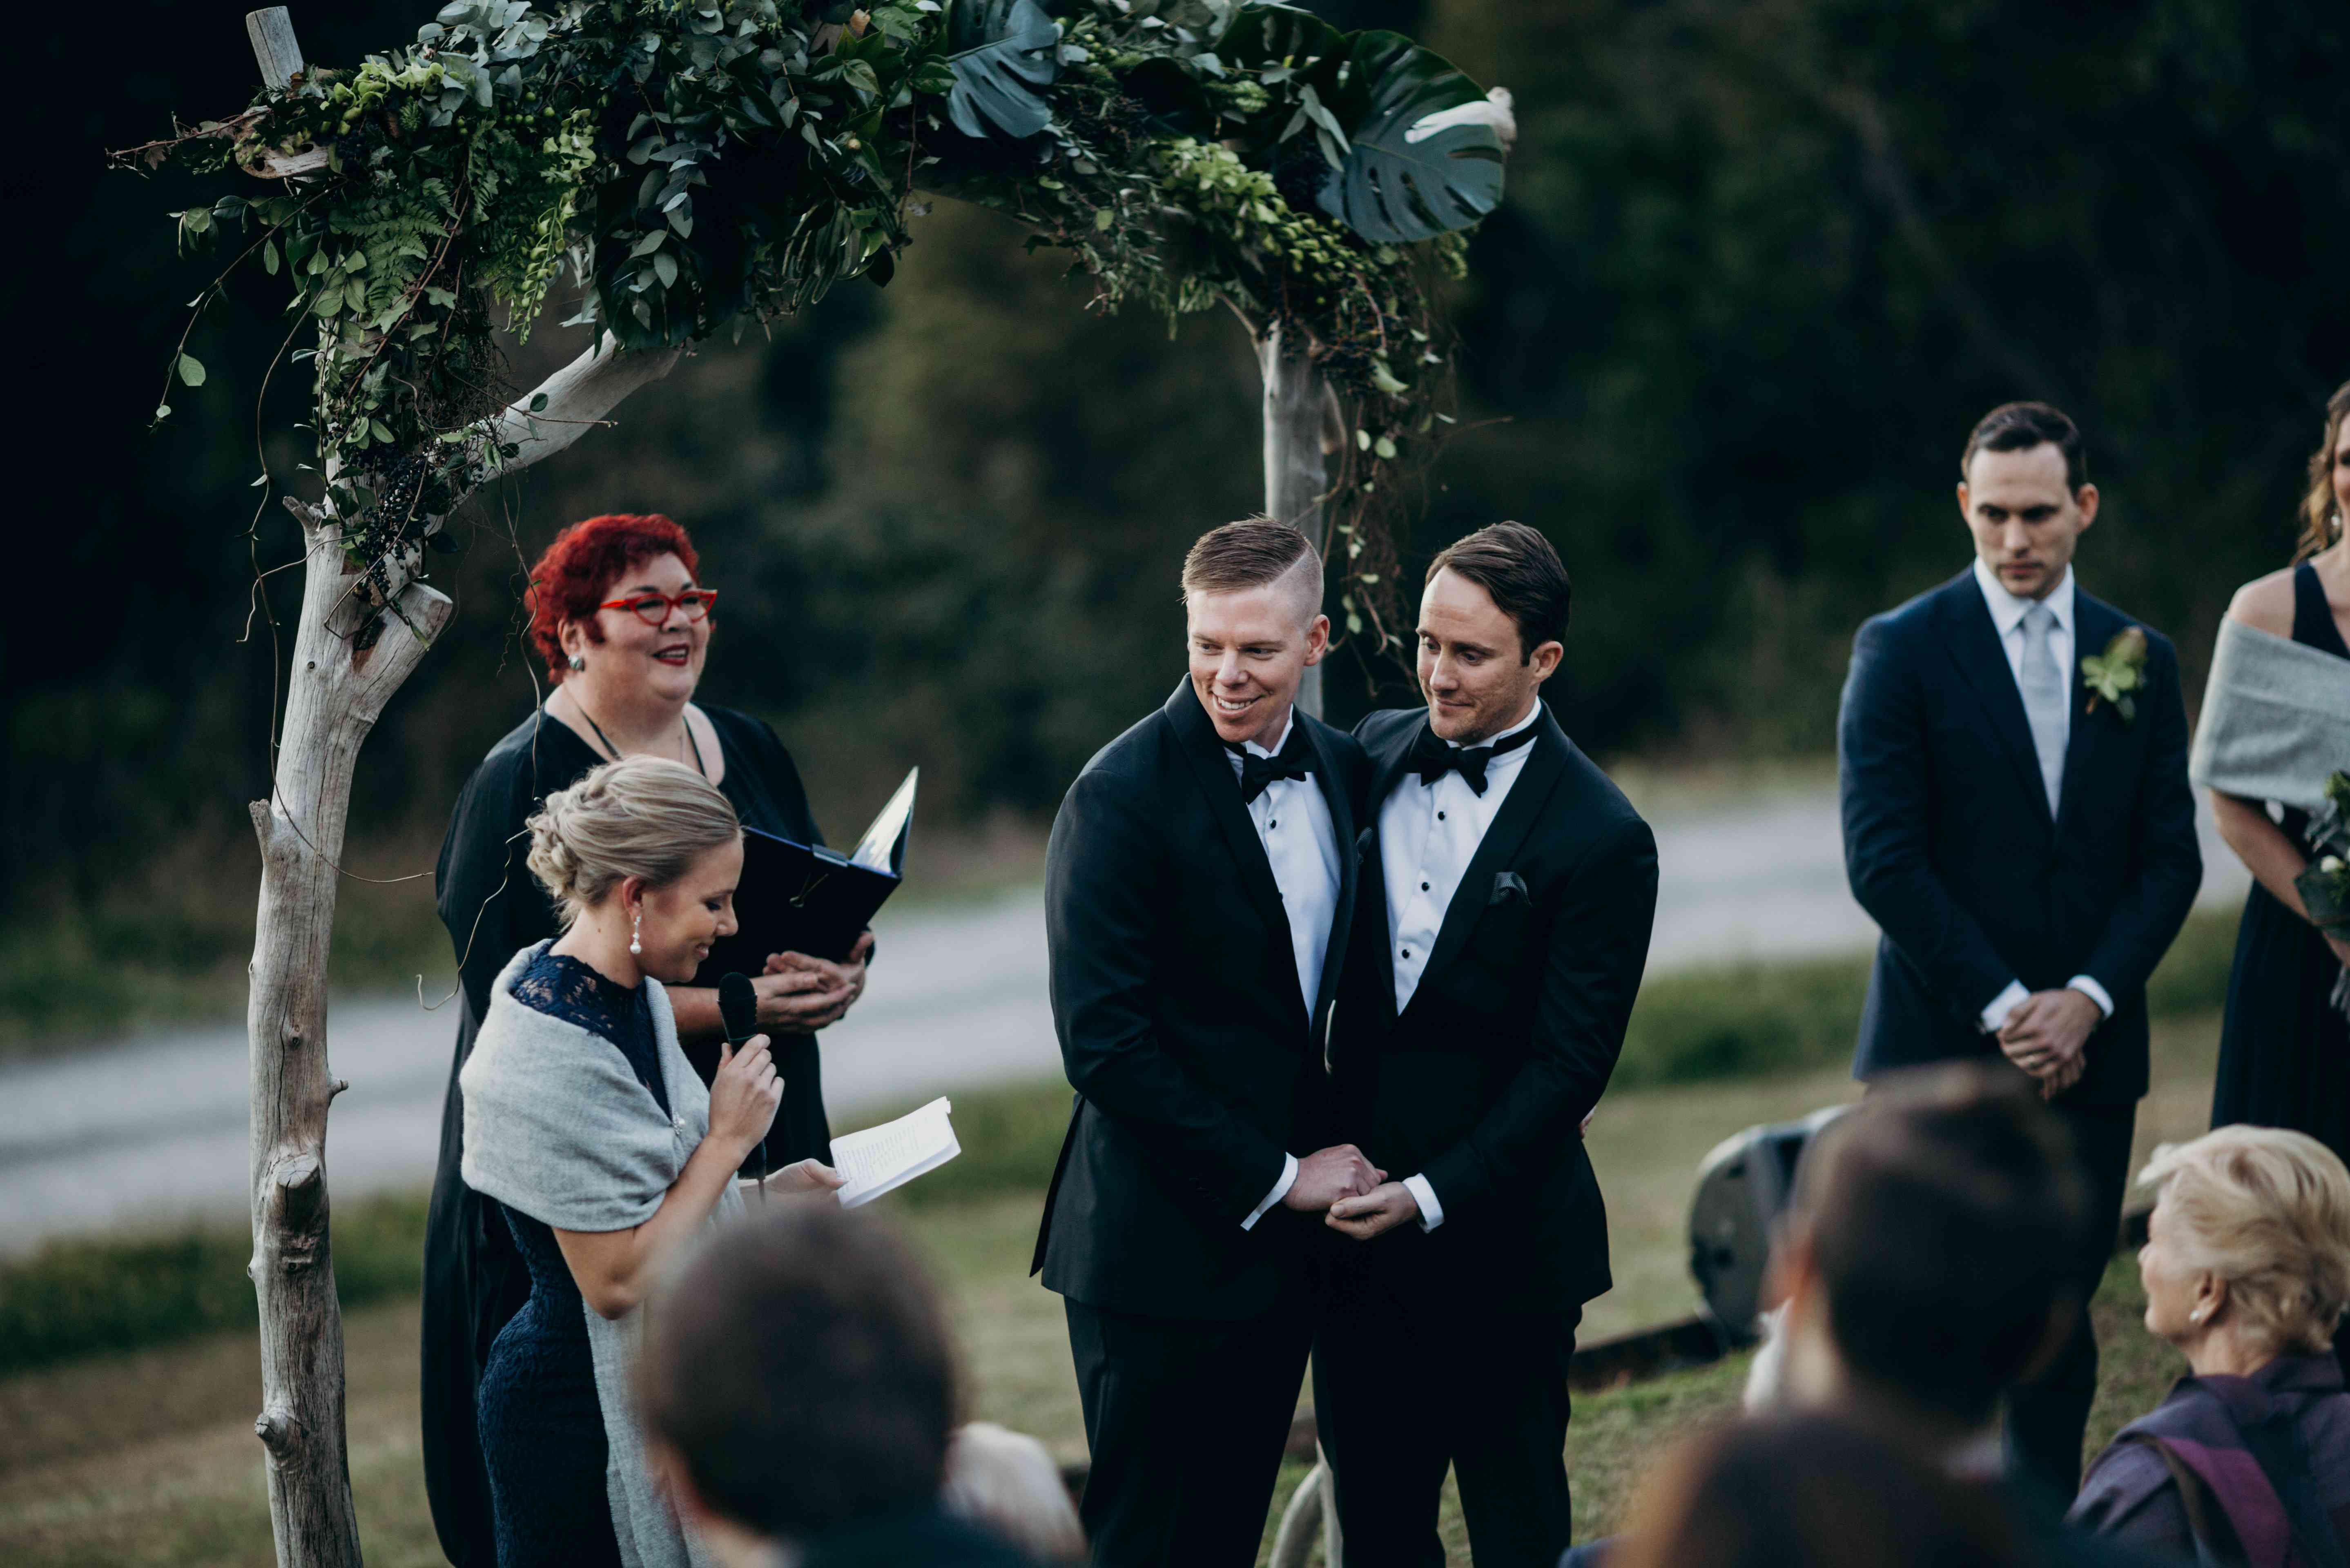 Grooms hold hands and embrace during wedding ceremony